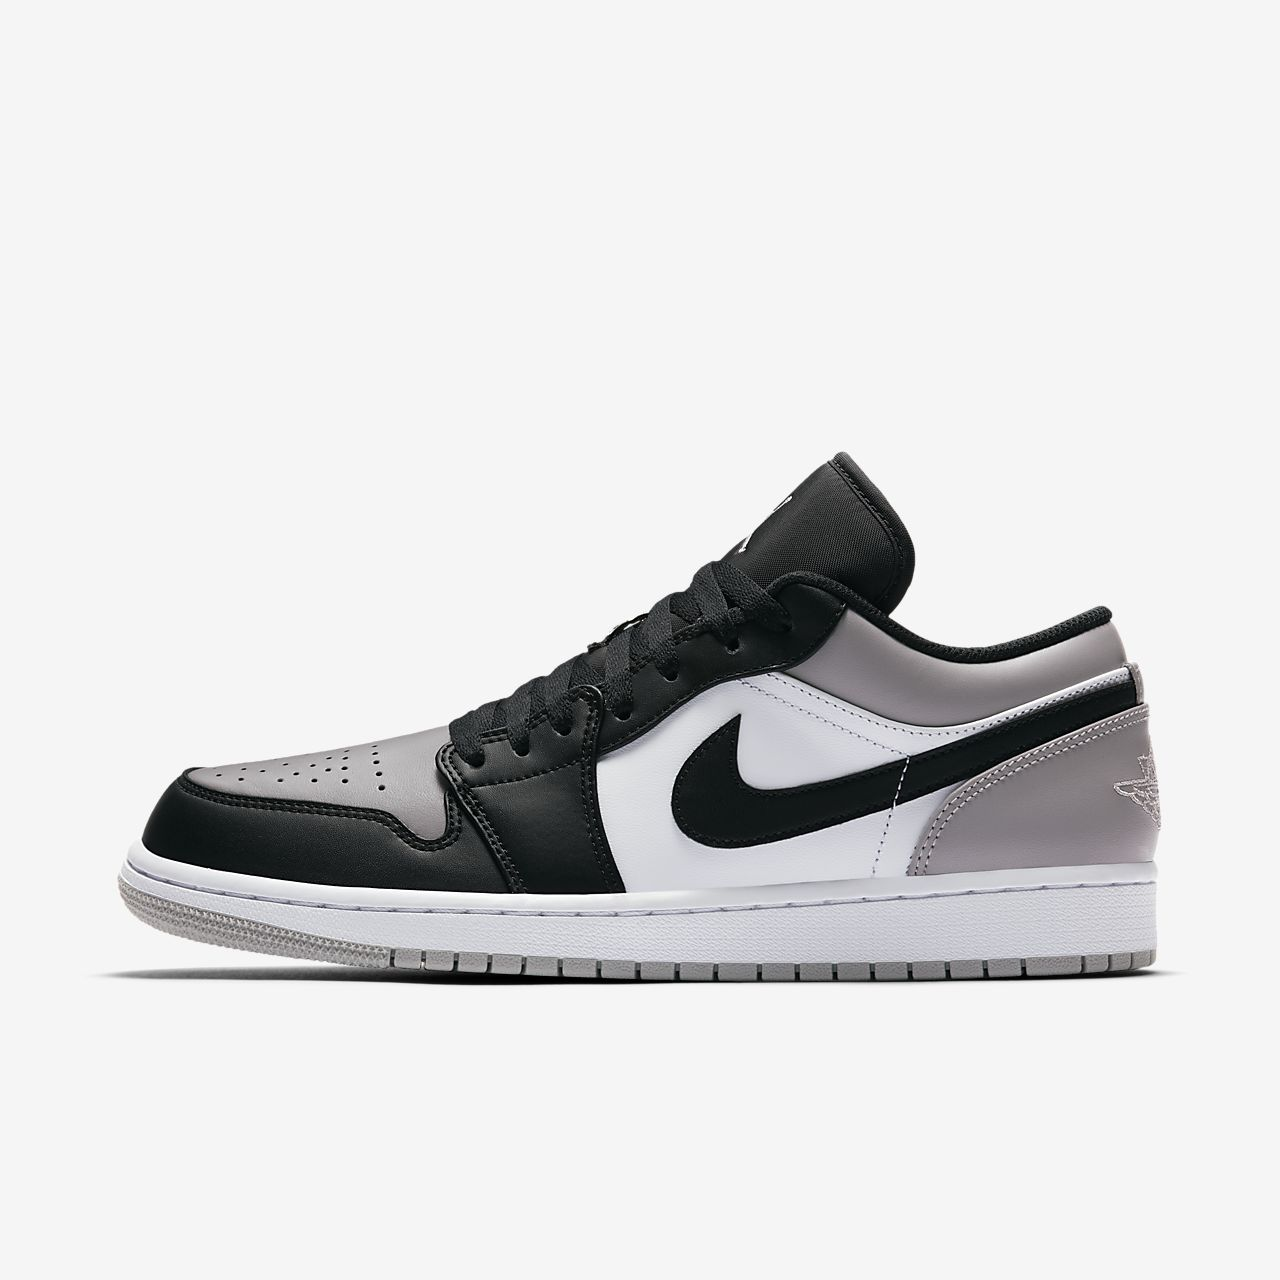 7e191d5d888 Air Jordan 1 Low Men's Shoe. Nike.com CH